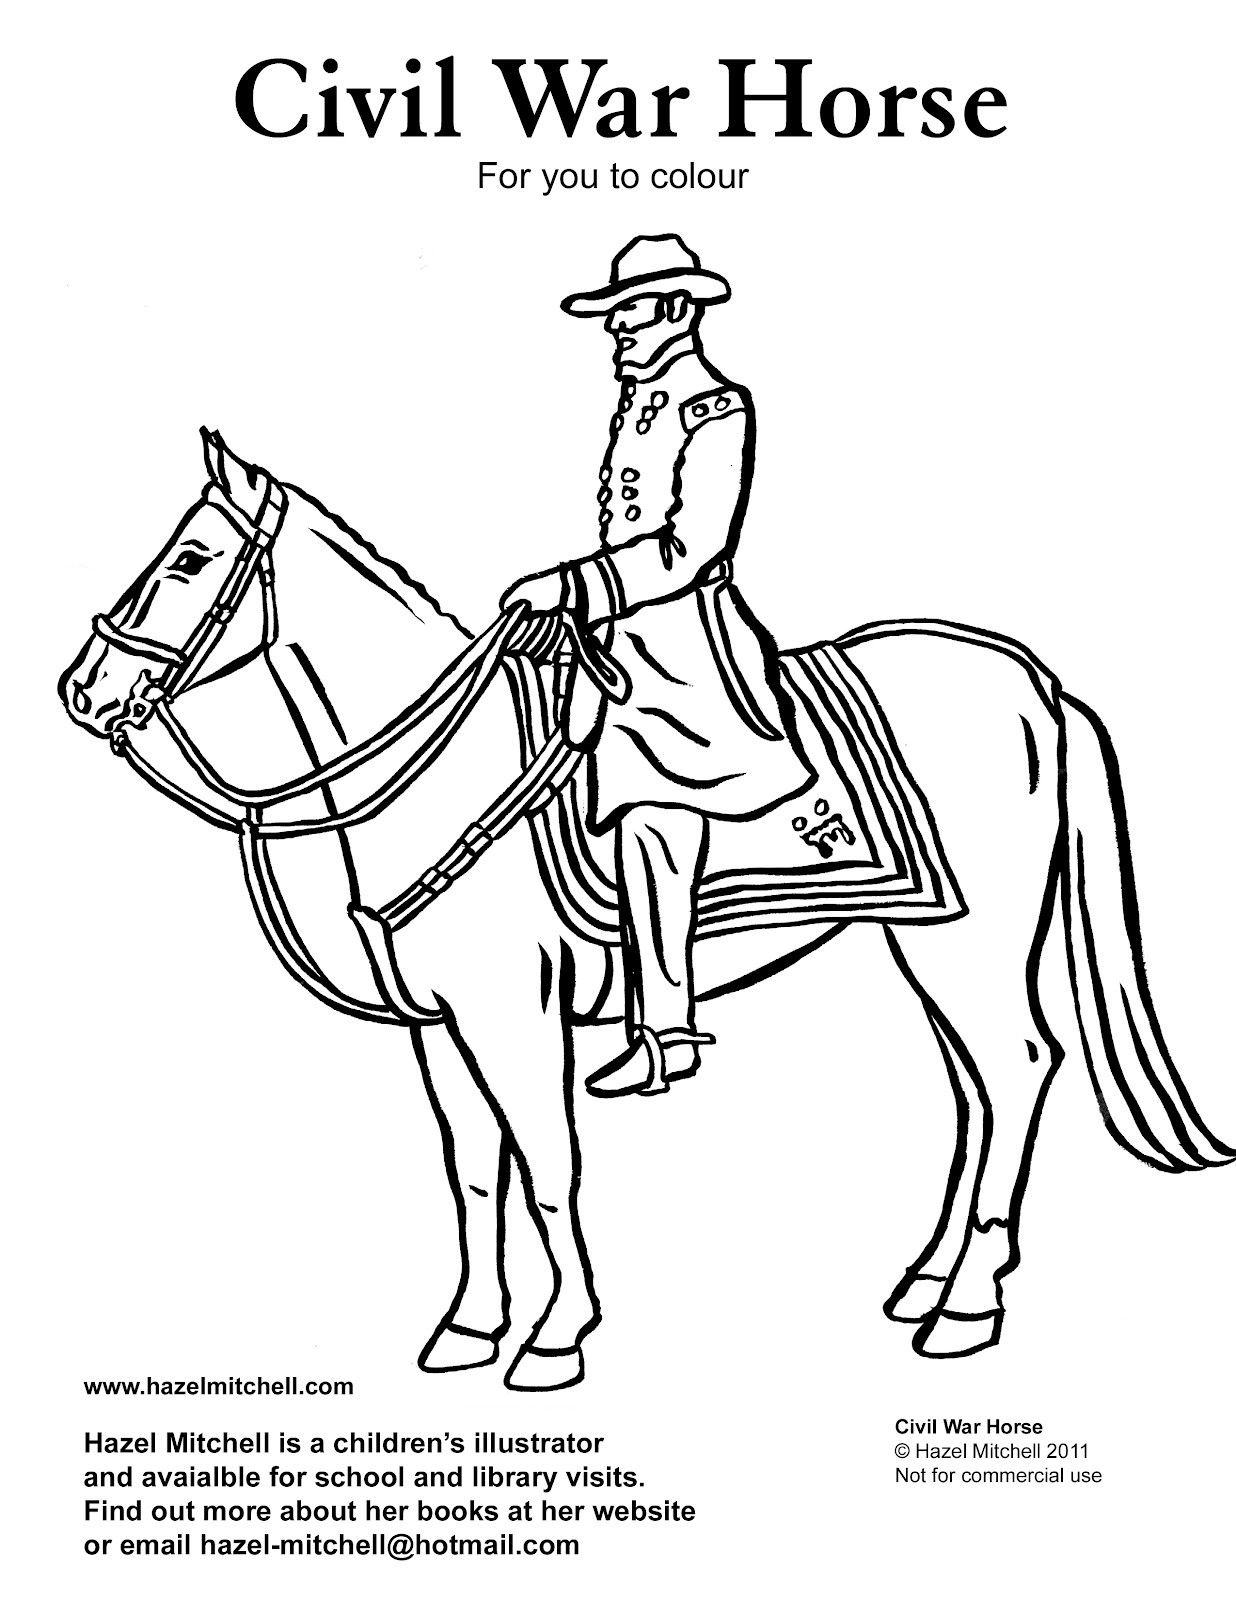 hazel mitchell colouring page for kids civil war horse nescbwi kidlit reblogger. Black Bedroom Furniture Sets. Home Design Ideas